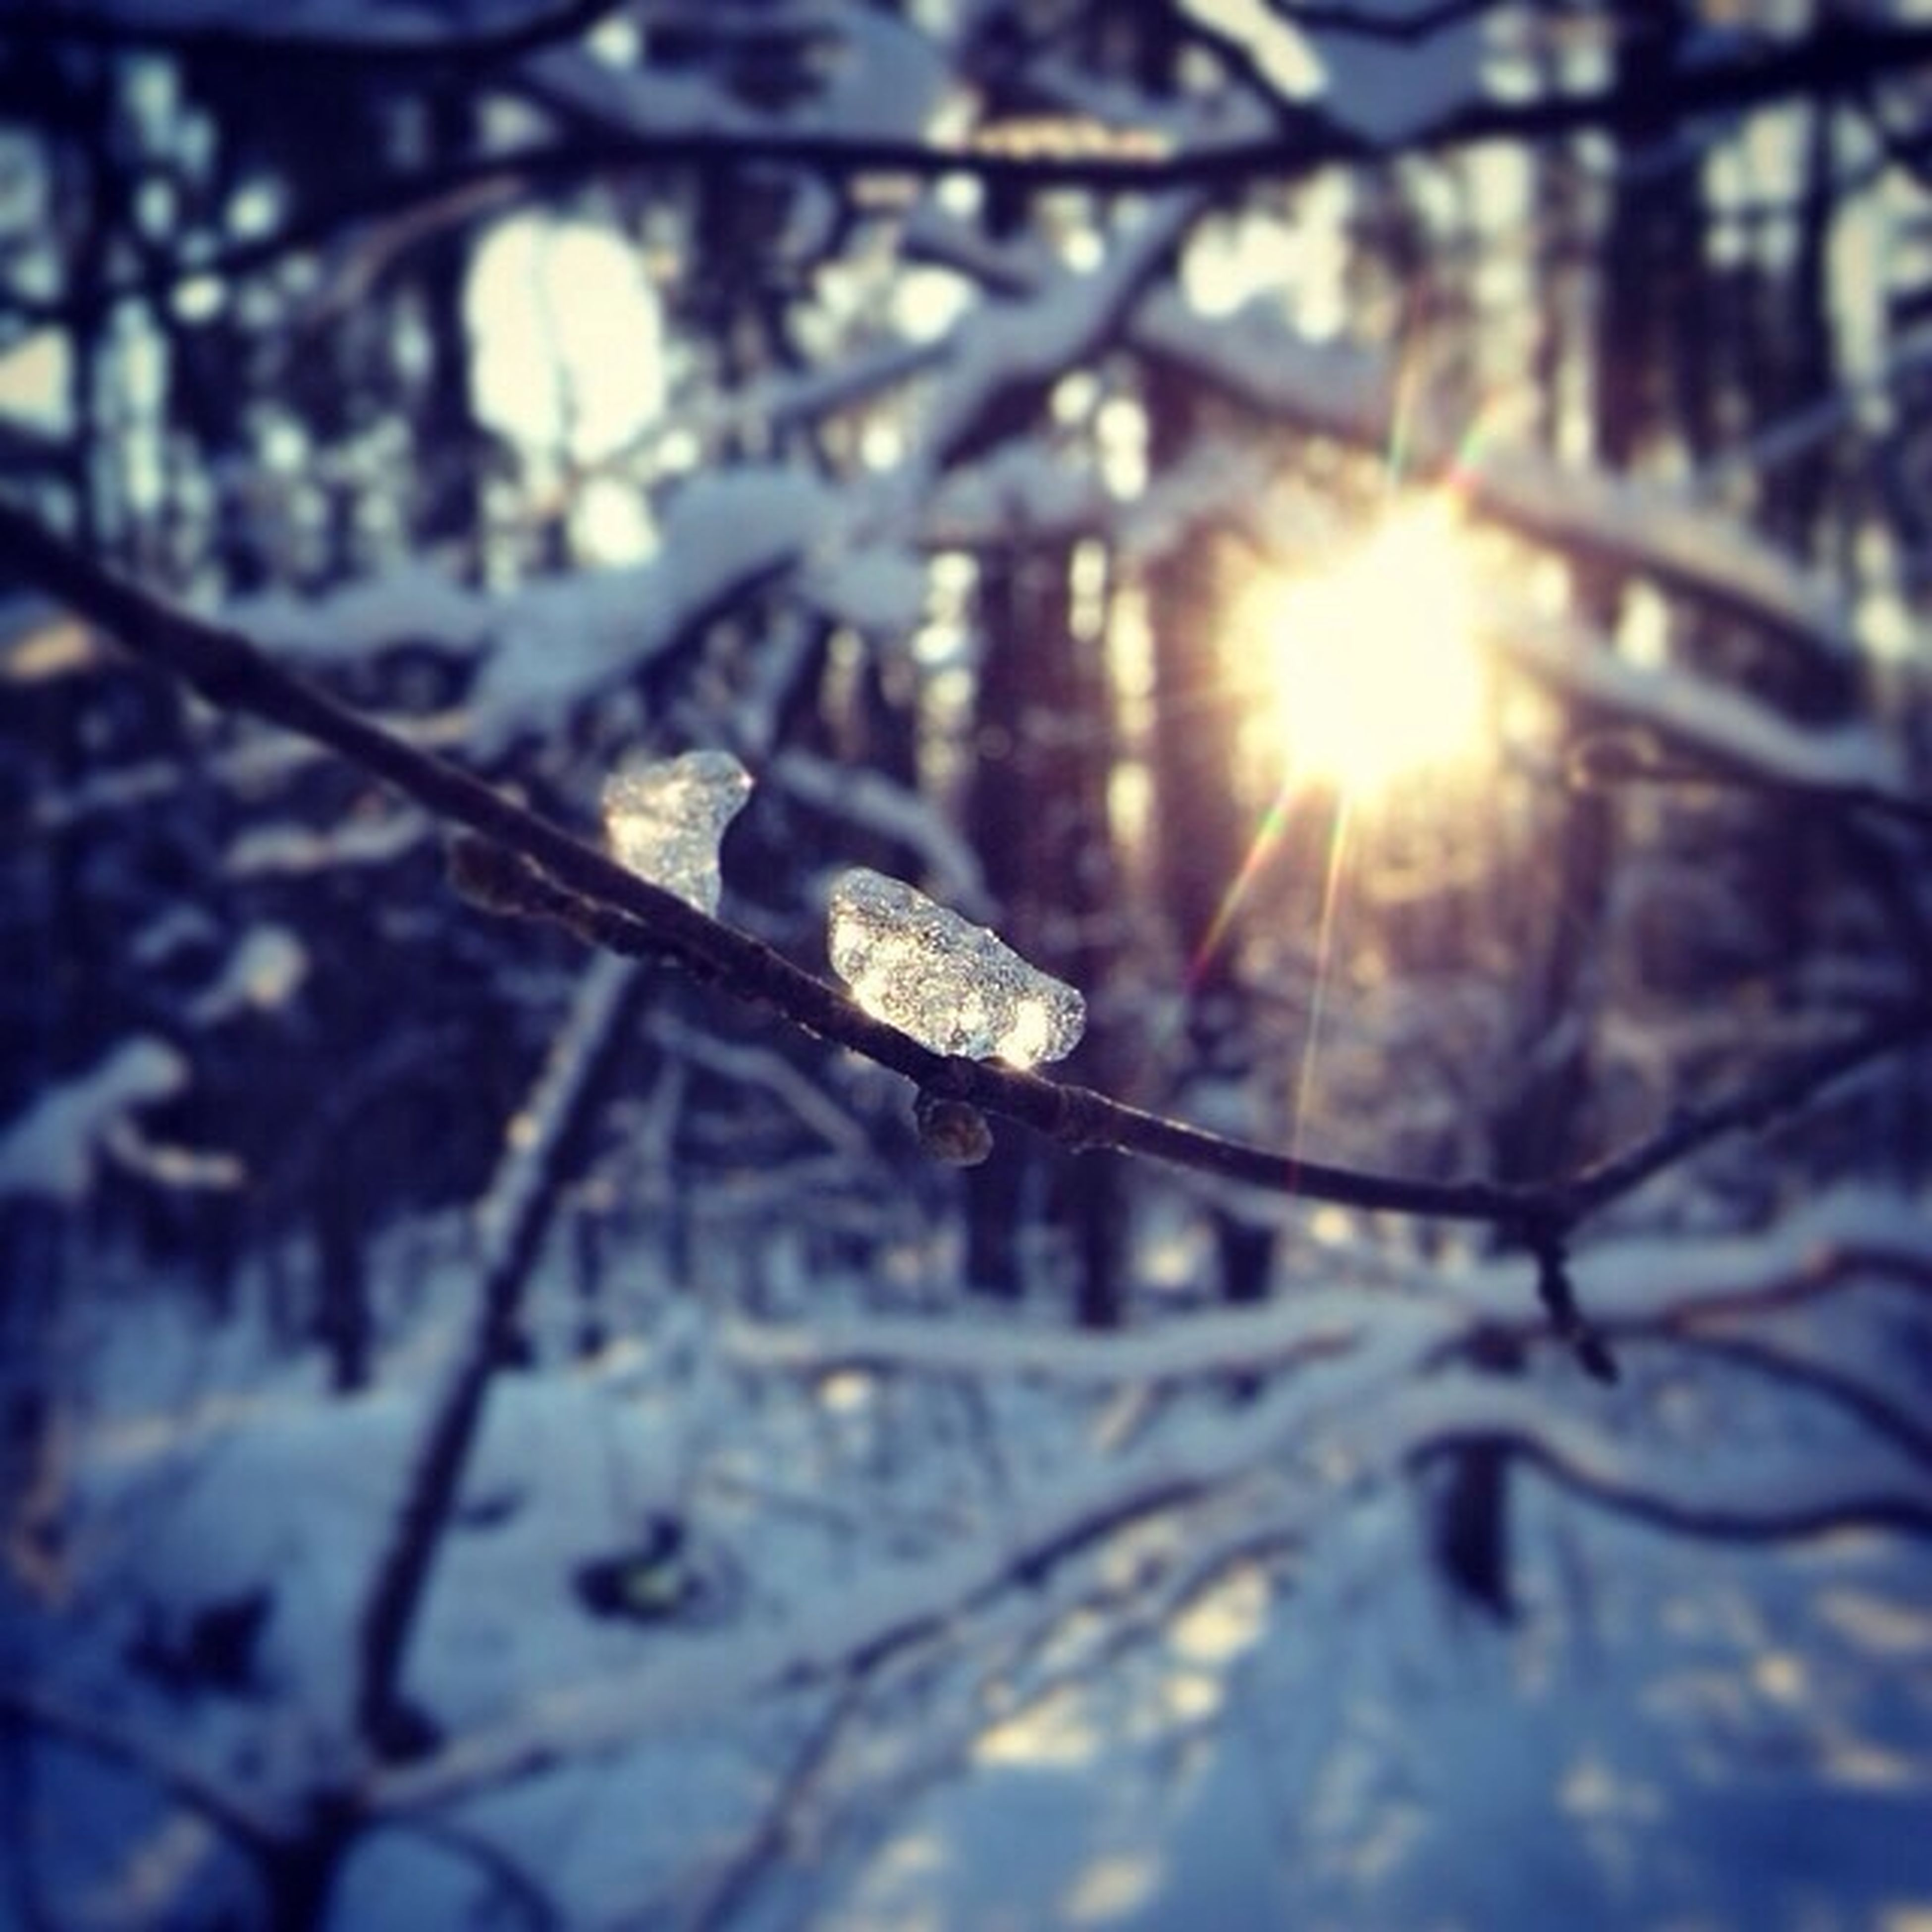 snow, cold temperature, winter, season, frozen, focus on foreground, nature, sun, close-up, sunlight, weather, covering, branch, tranquility, outdoors, beauty in nature, no people, lens flare, tree, white color